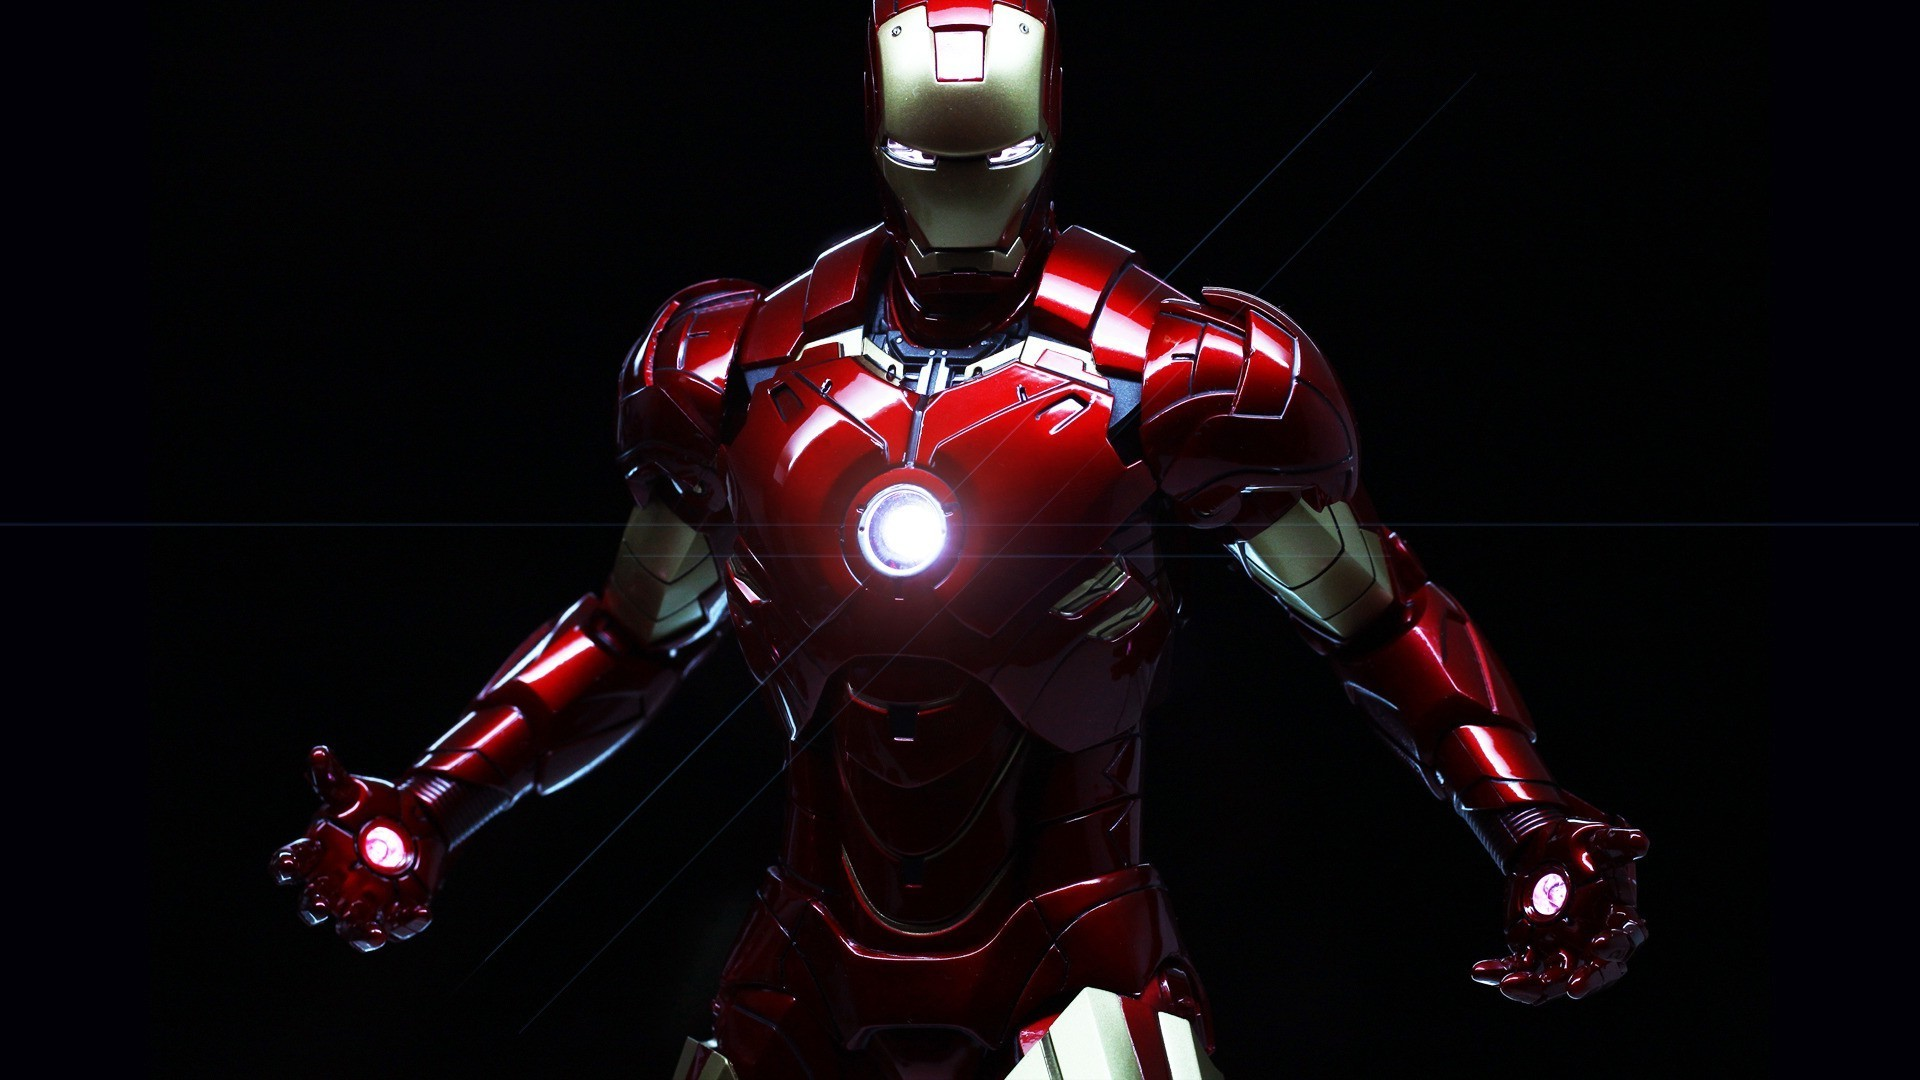 iron man hd wallpapers for desktop download. Black Bedroom Furniture Sets. Home Design Ideas